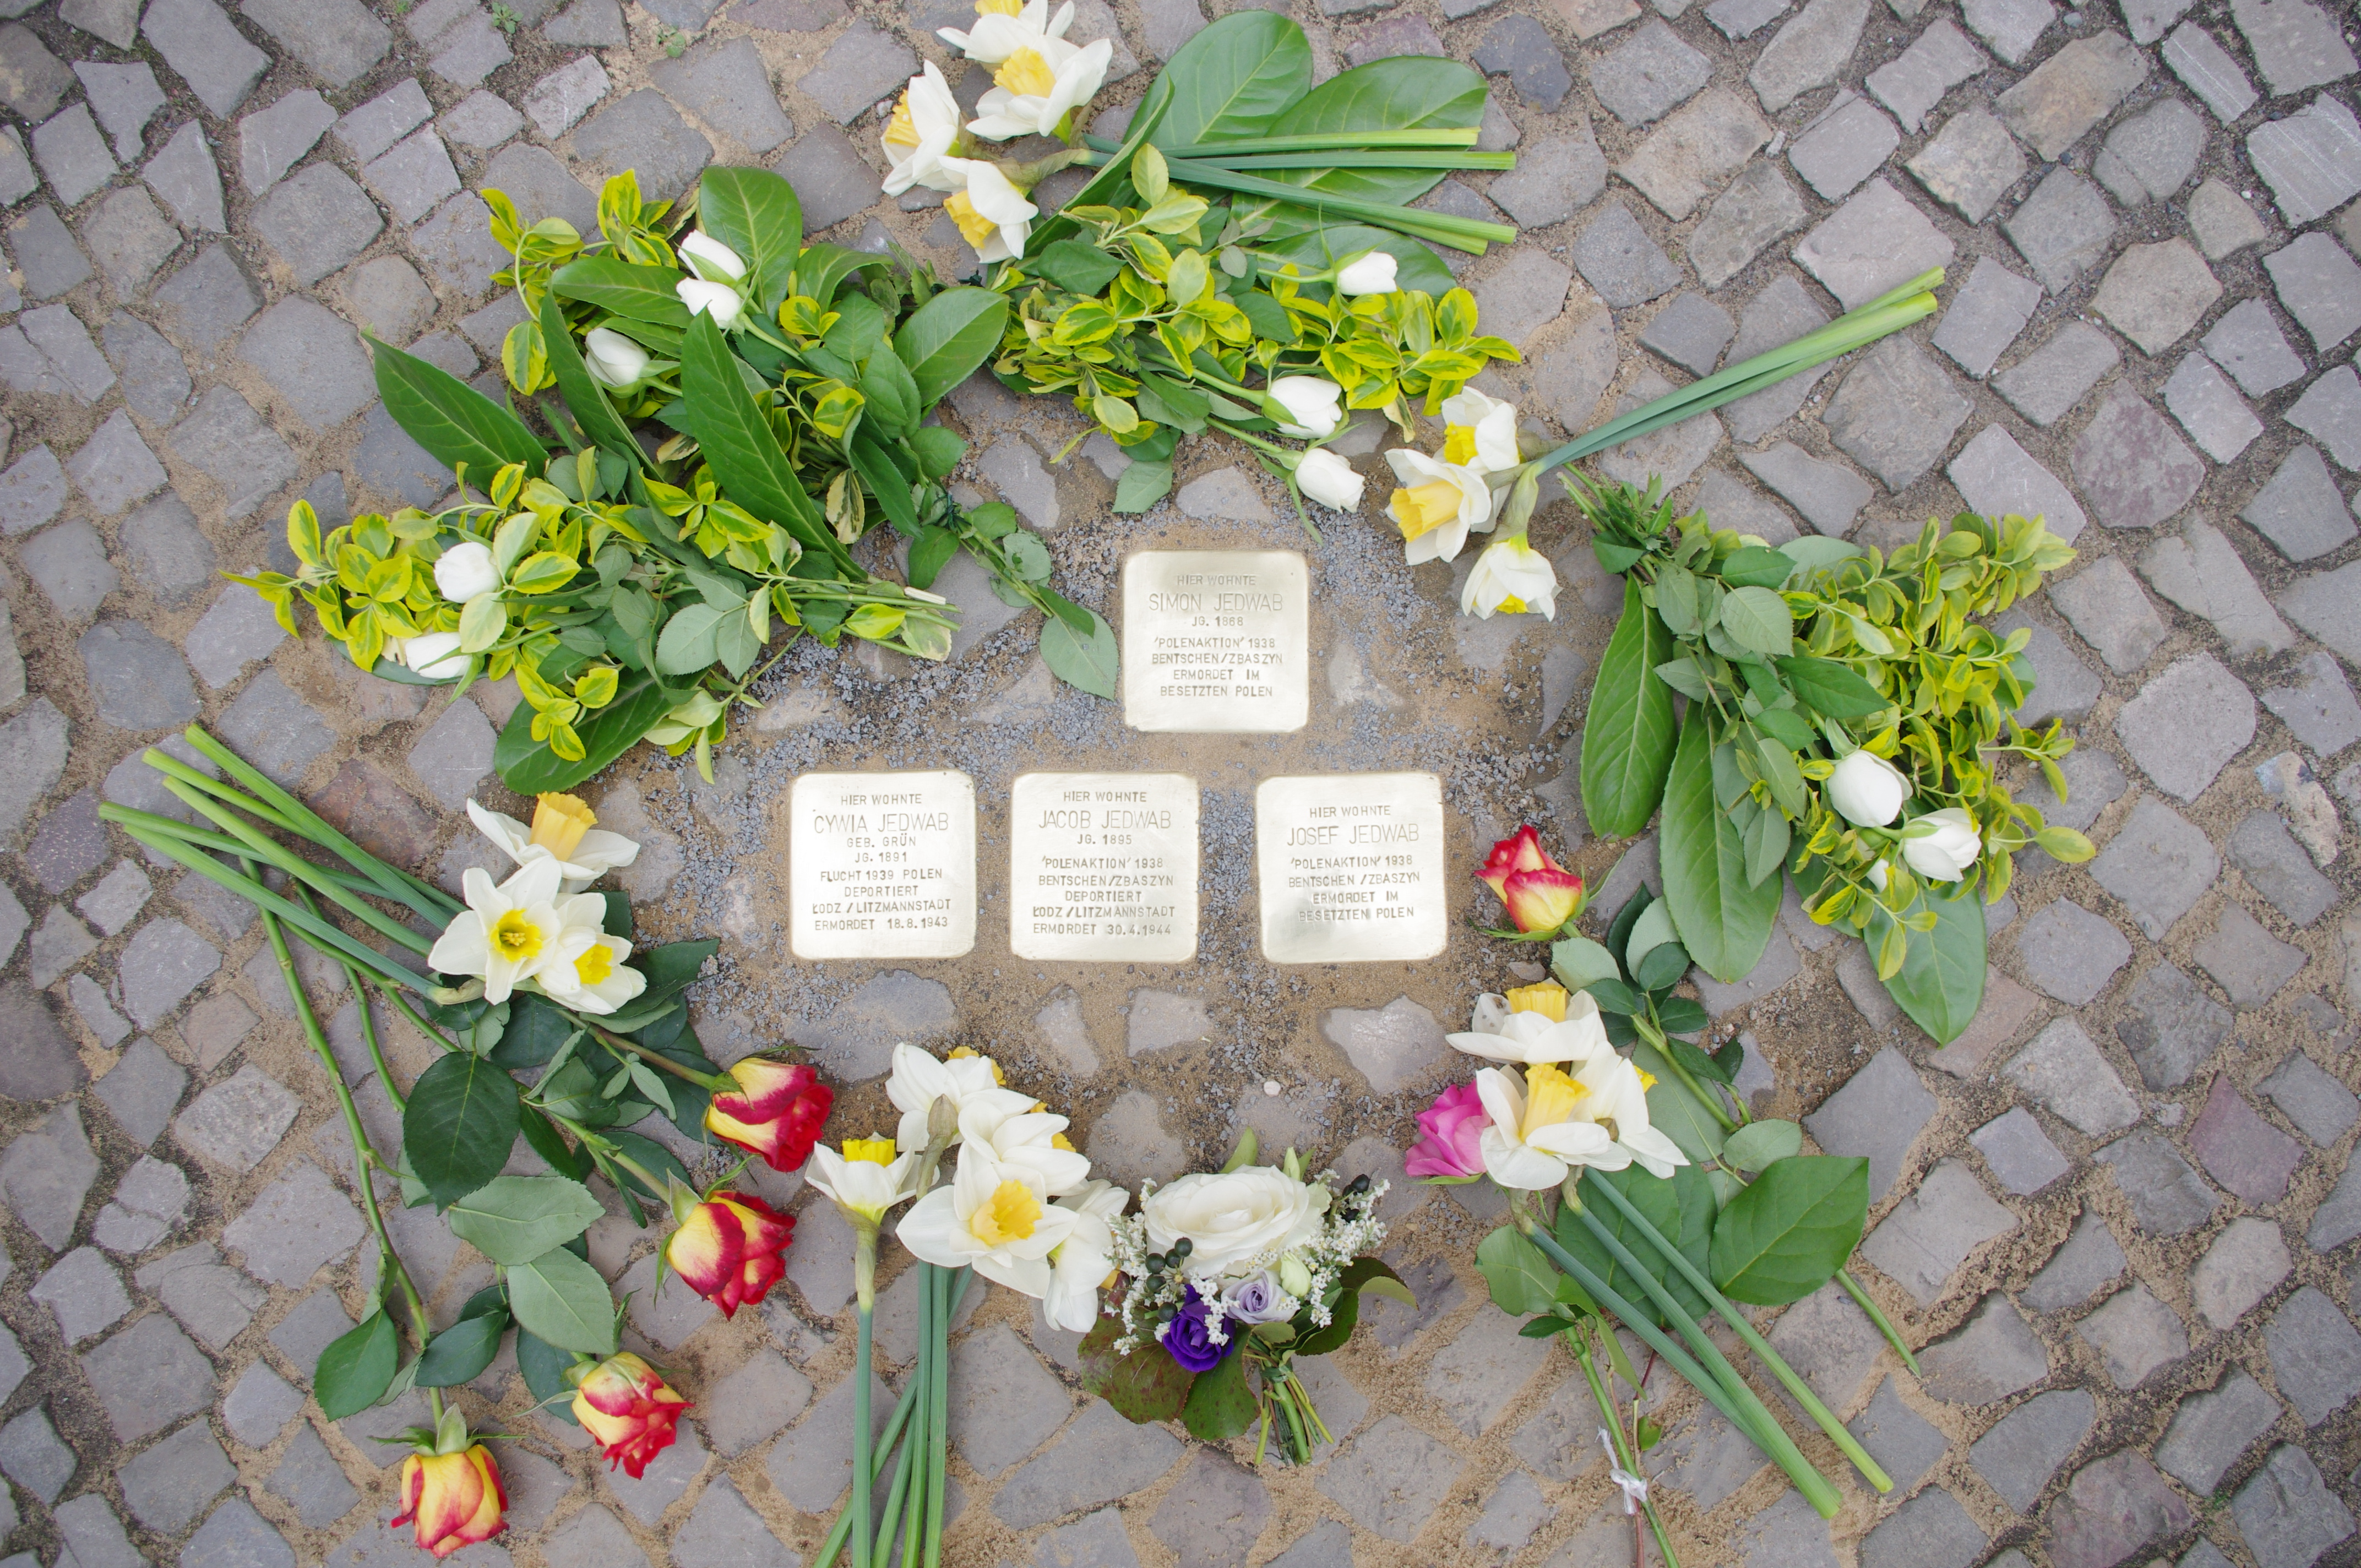 All four new stumbling stones with flowers at the end of the ceremony.